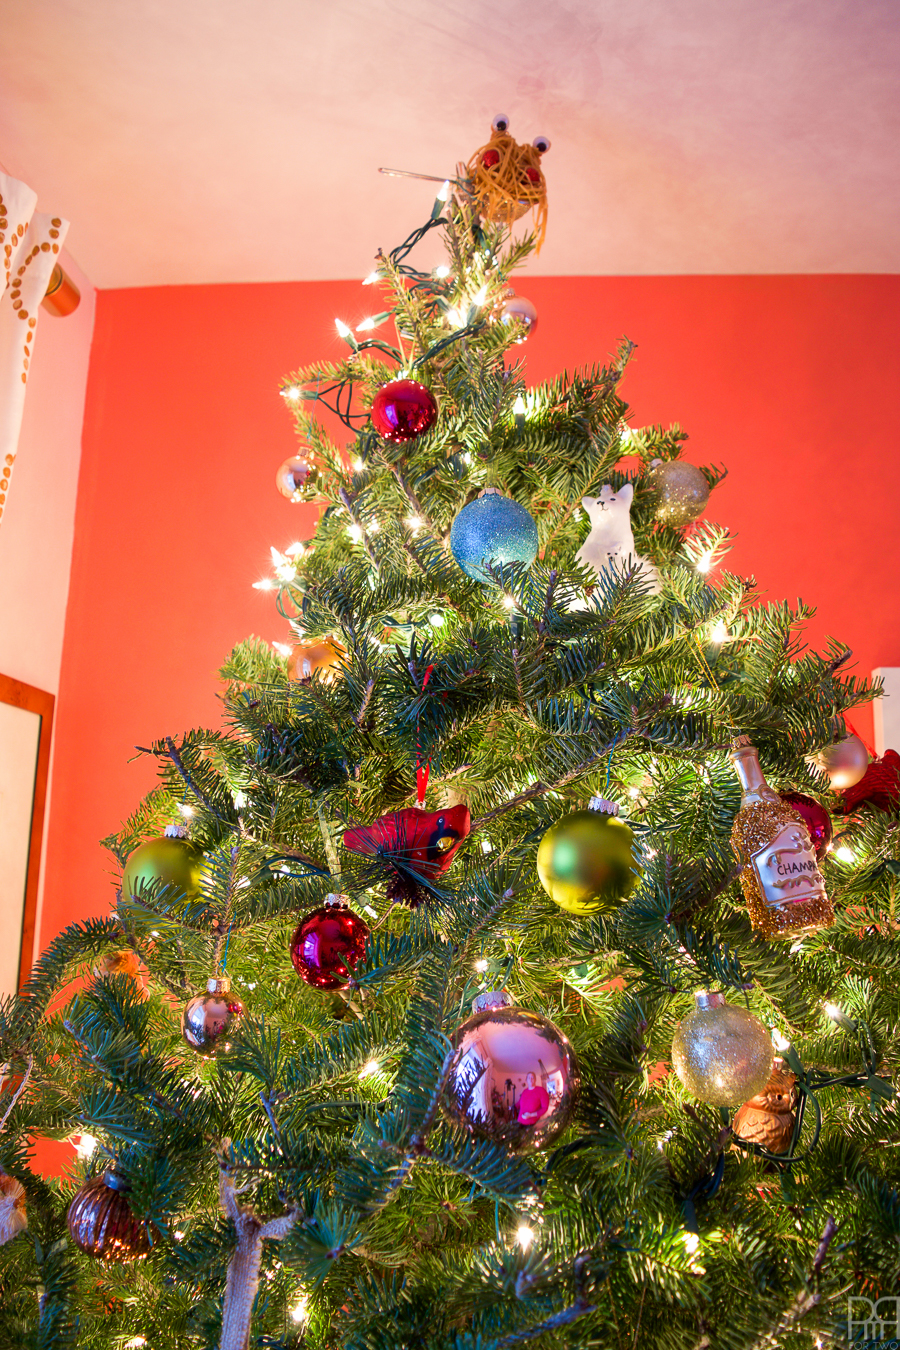 my-home-style-eclectic-bauble-tree-10